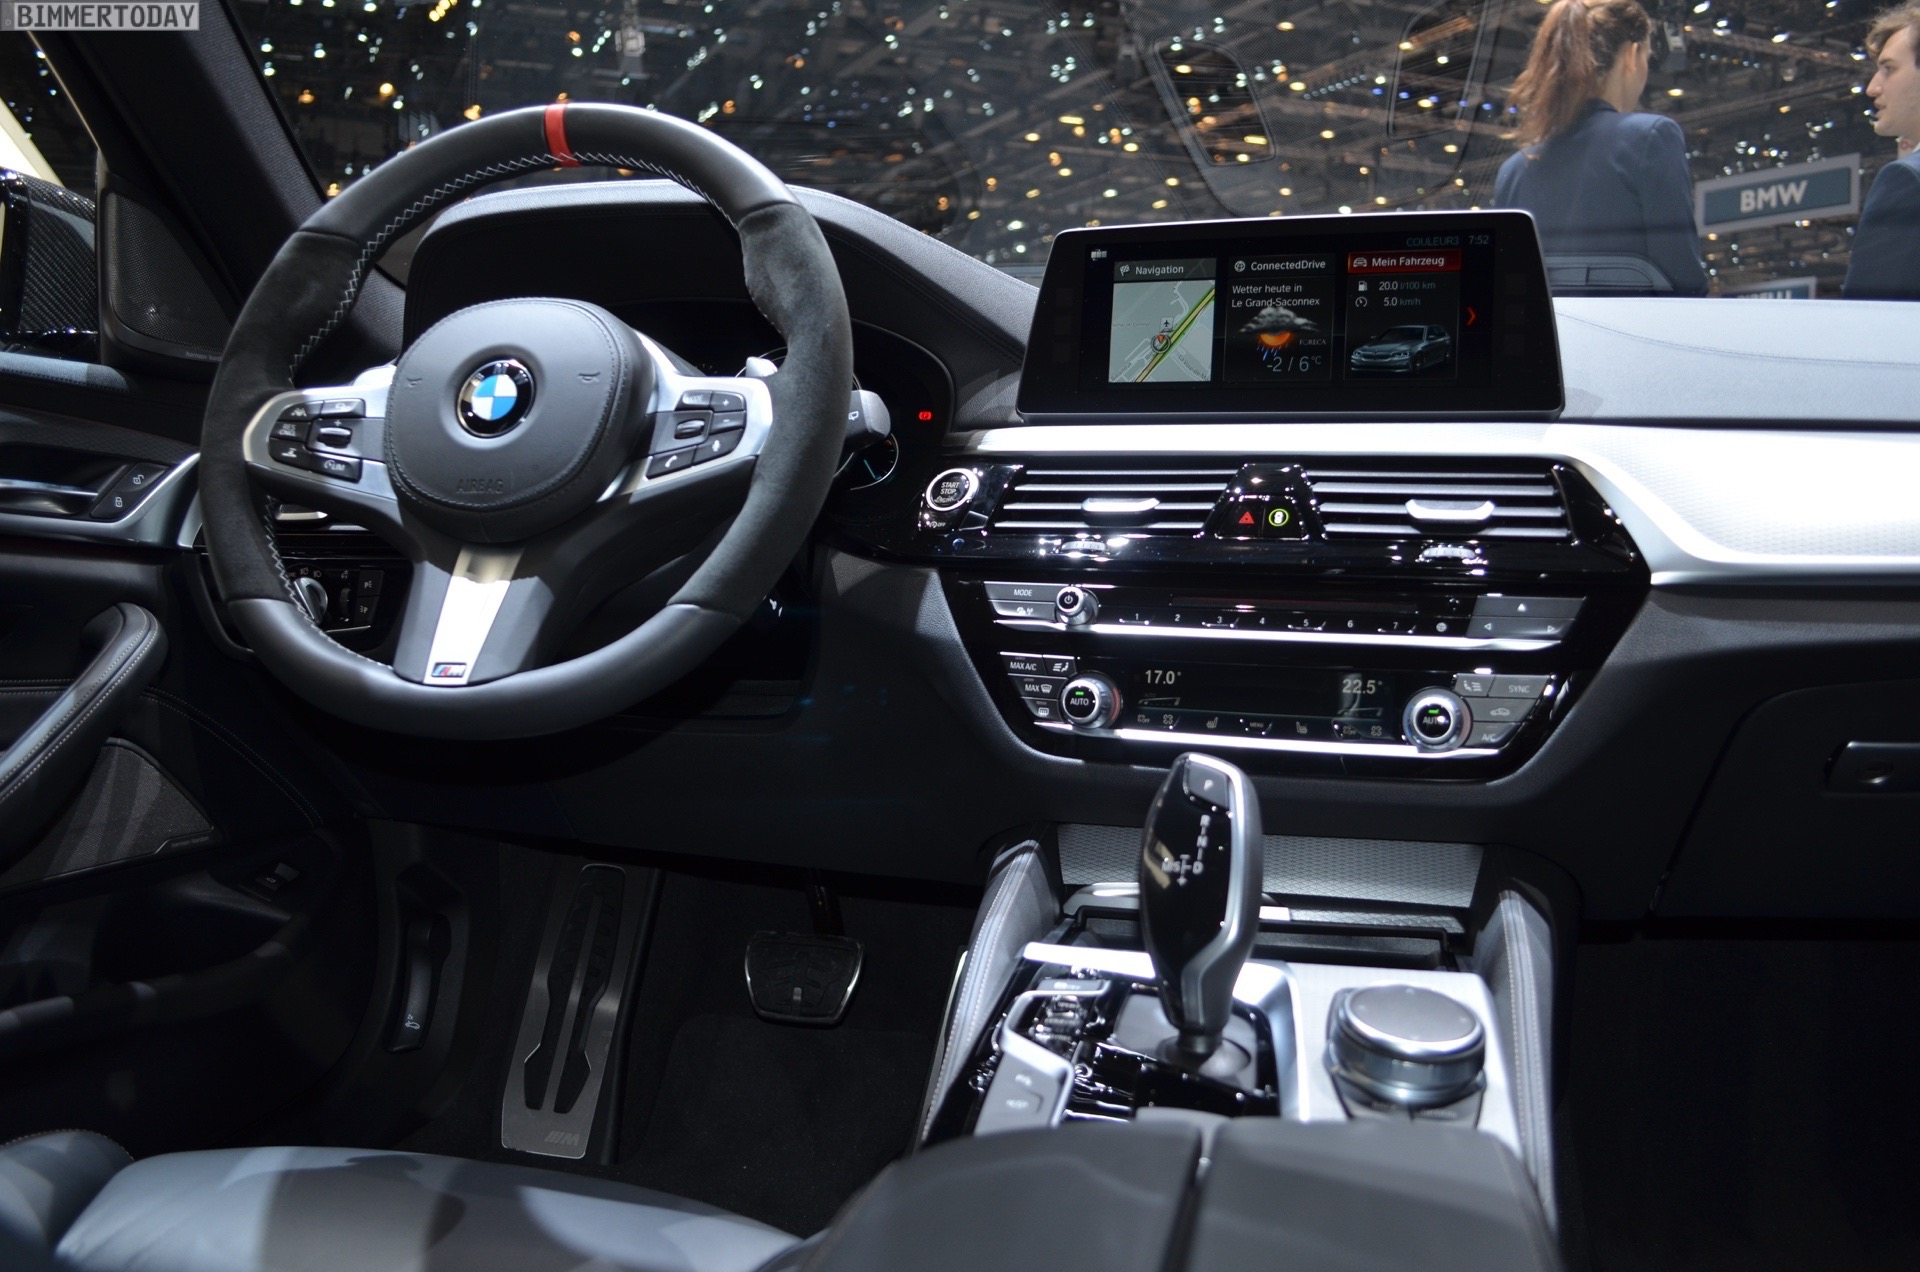 the steering wheel is of course combined with shift paddles on all vehicles with an automatic eight speed automatic transmission radiating even more